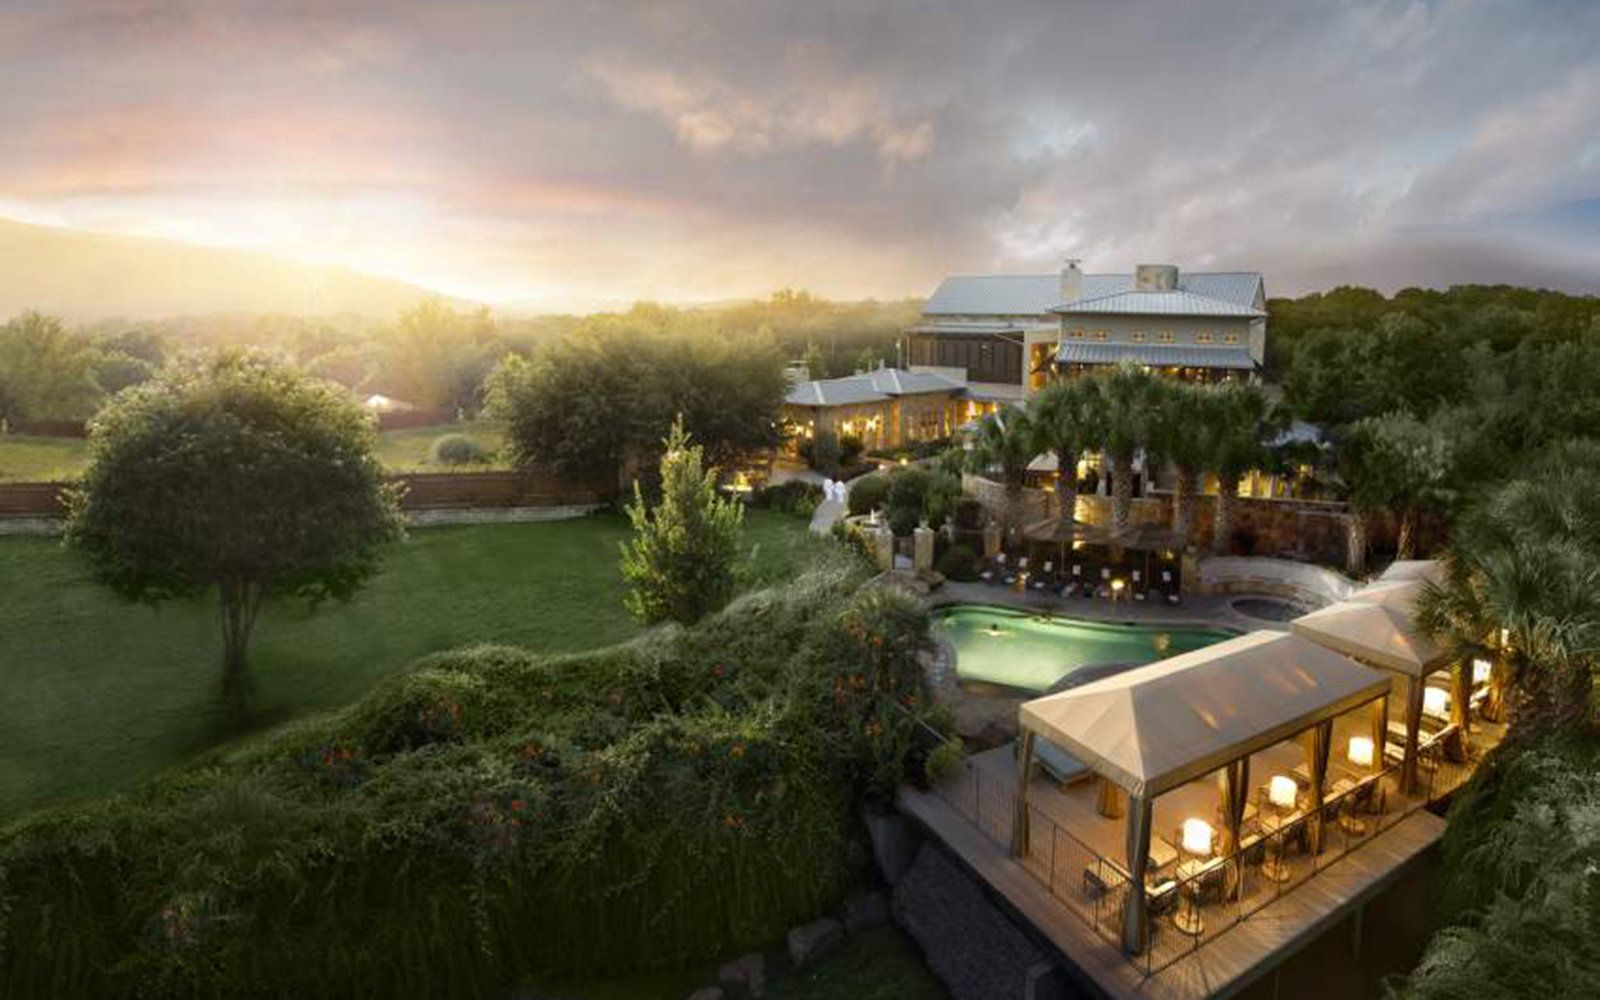 Lake Austin Spa Resort in Austin, Texas: More than anything, this luxe, rustic resort located just outside the Austin city limits in Hill Country gives its guests options. Take cooking classes with visiting chefs, try your hand at an Aqua Fit workout, or take a kayak out on the lake.